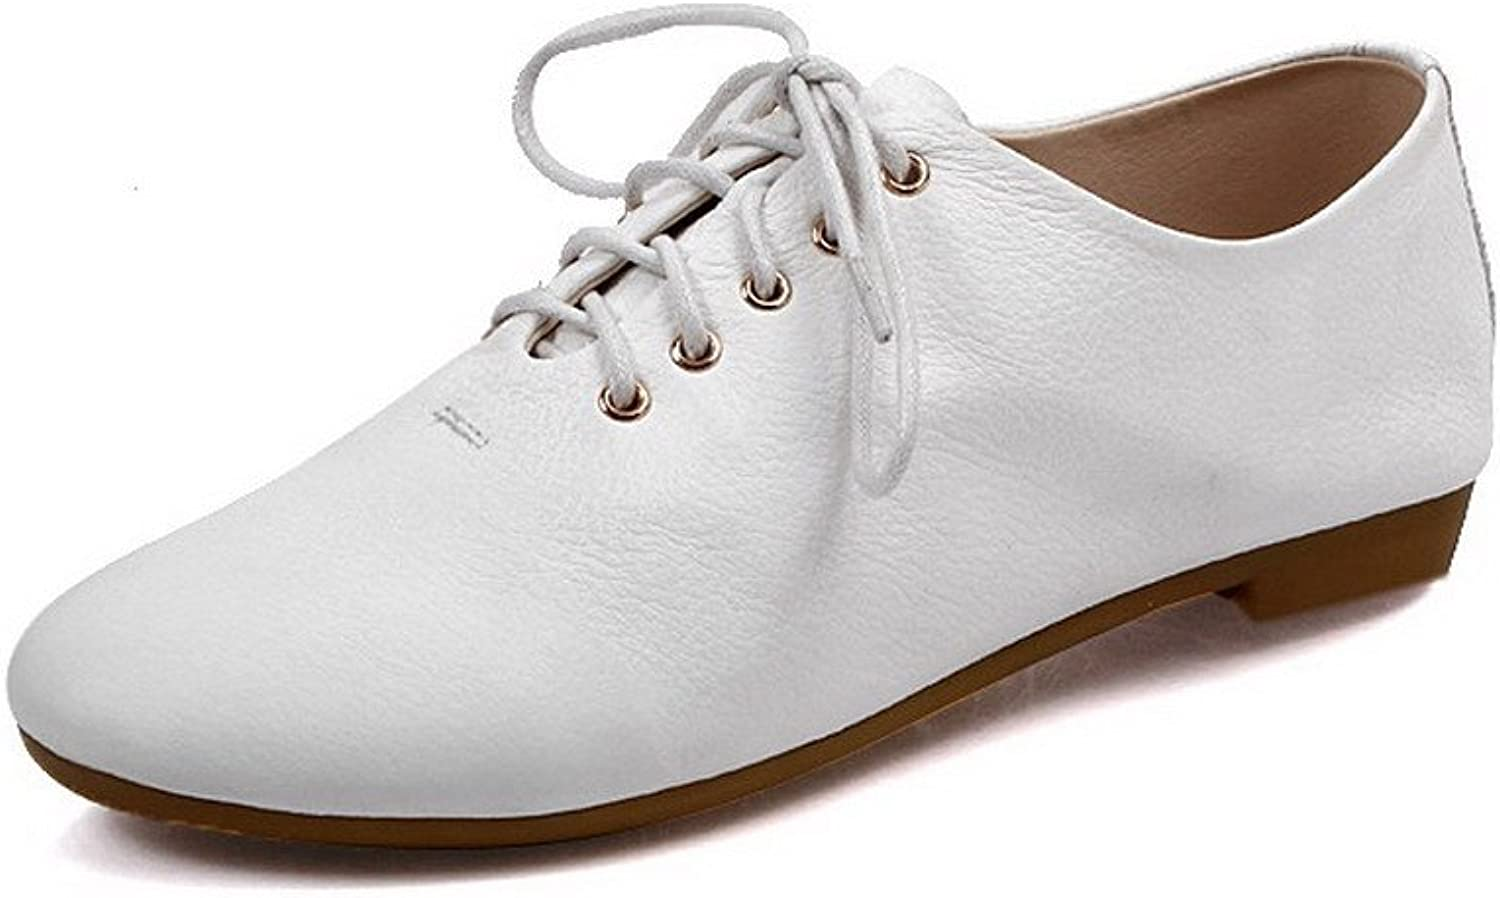 WeenFashion Womens Closed Round Toe Cow Leather Soft Material Micro Fiber Solid Flats, White, 7.5 B(M) US